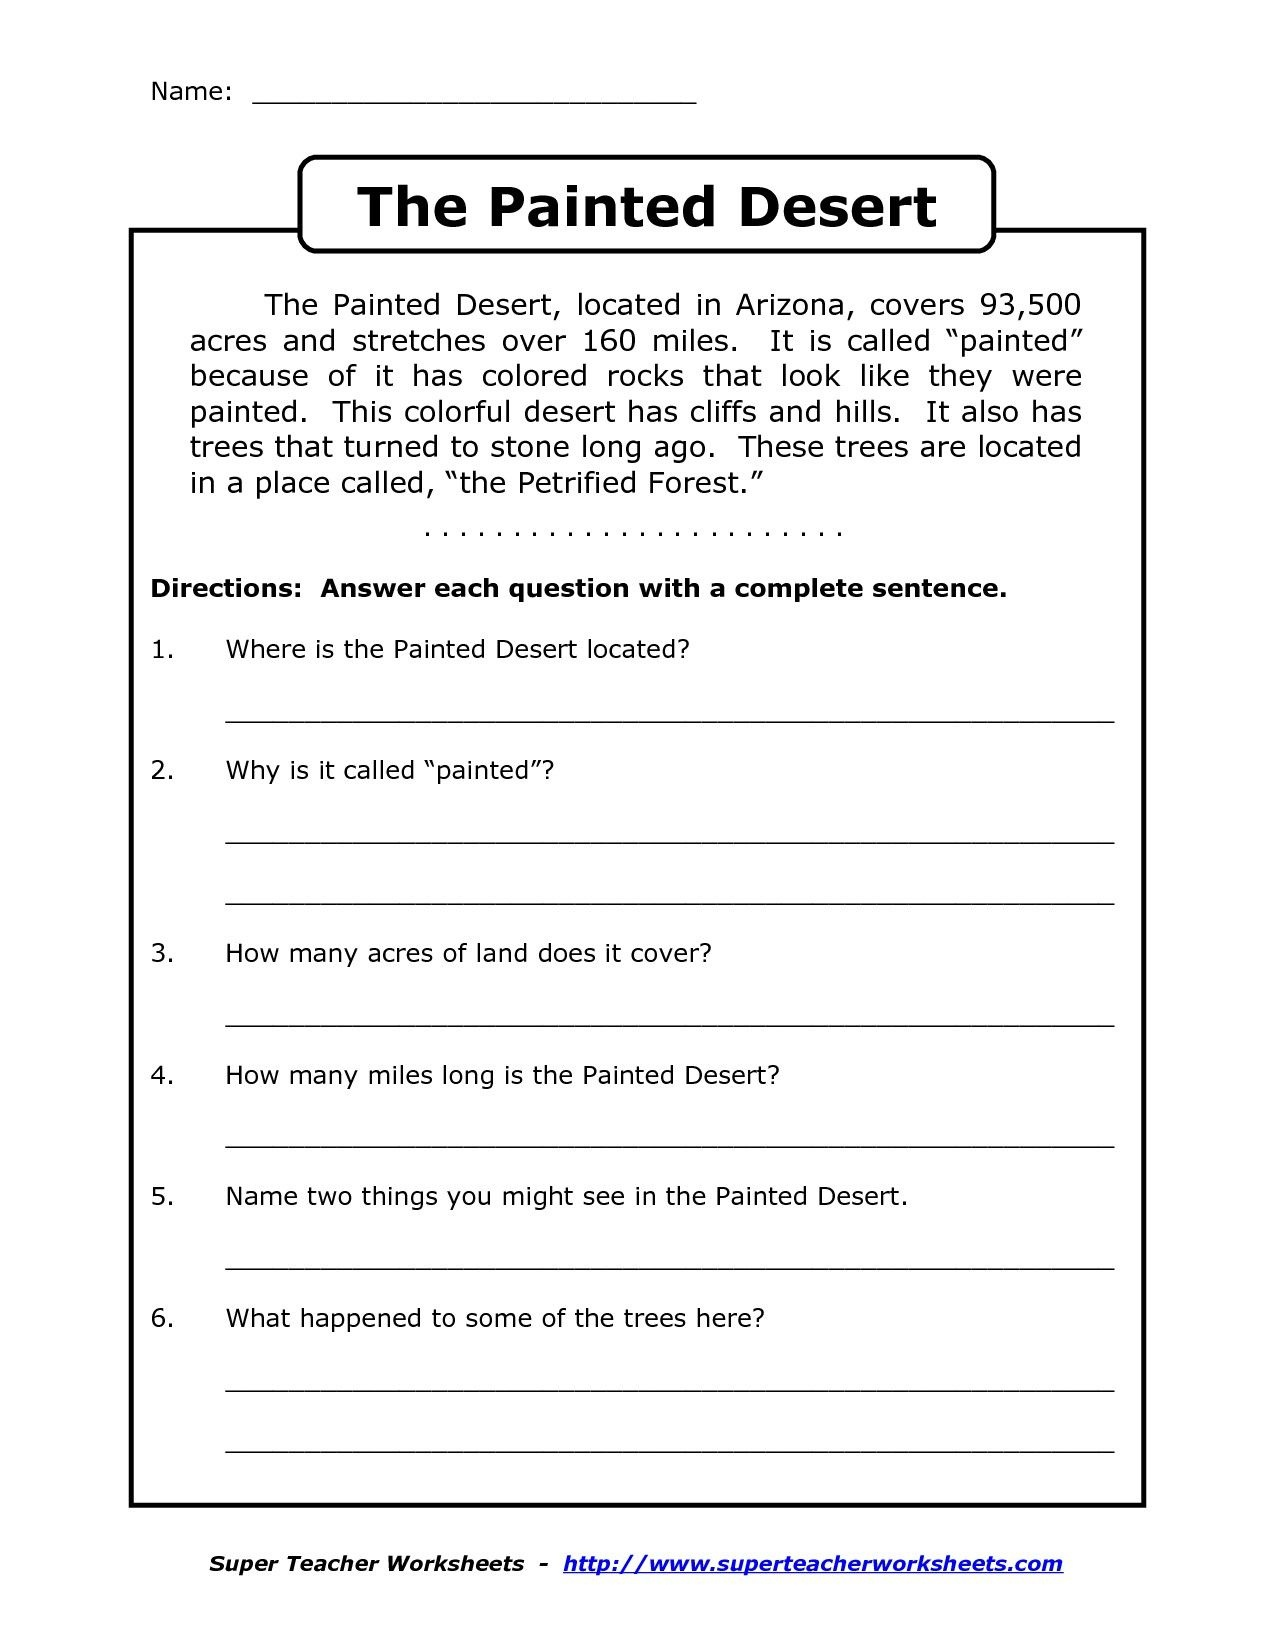 Image Result For Free Printable Worksheets For Grade 4 Comprehension - Free Printable Comprehension Worksheets For Grade 5